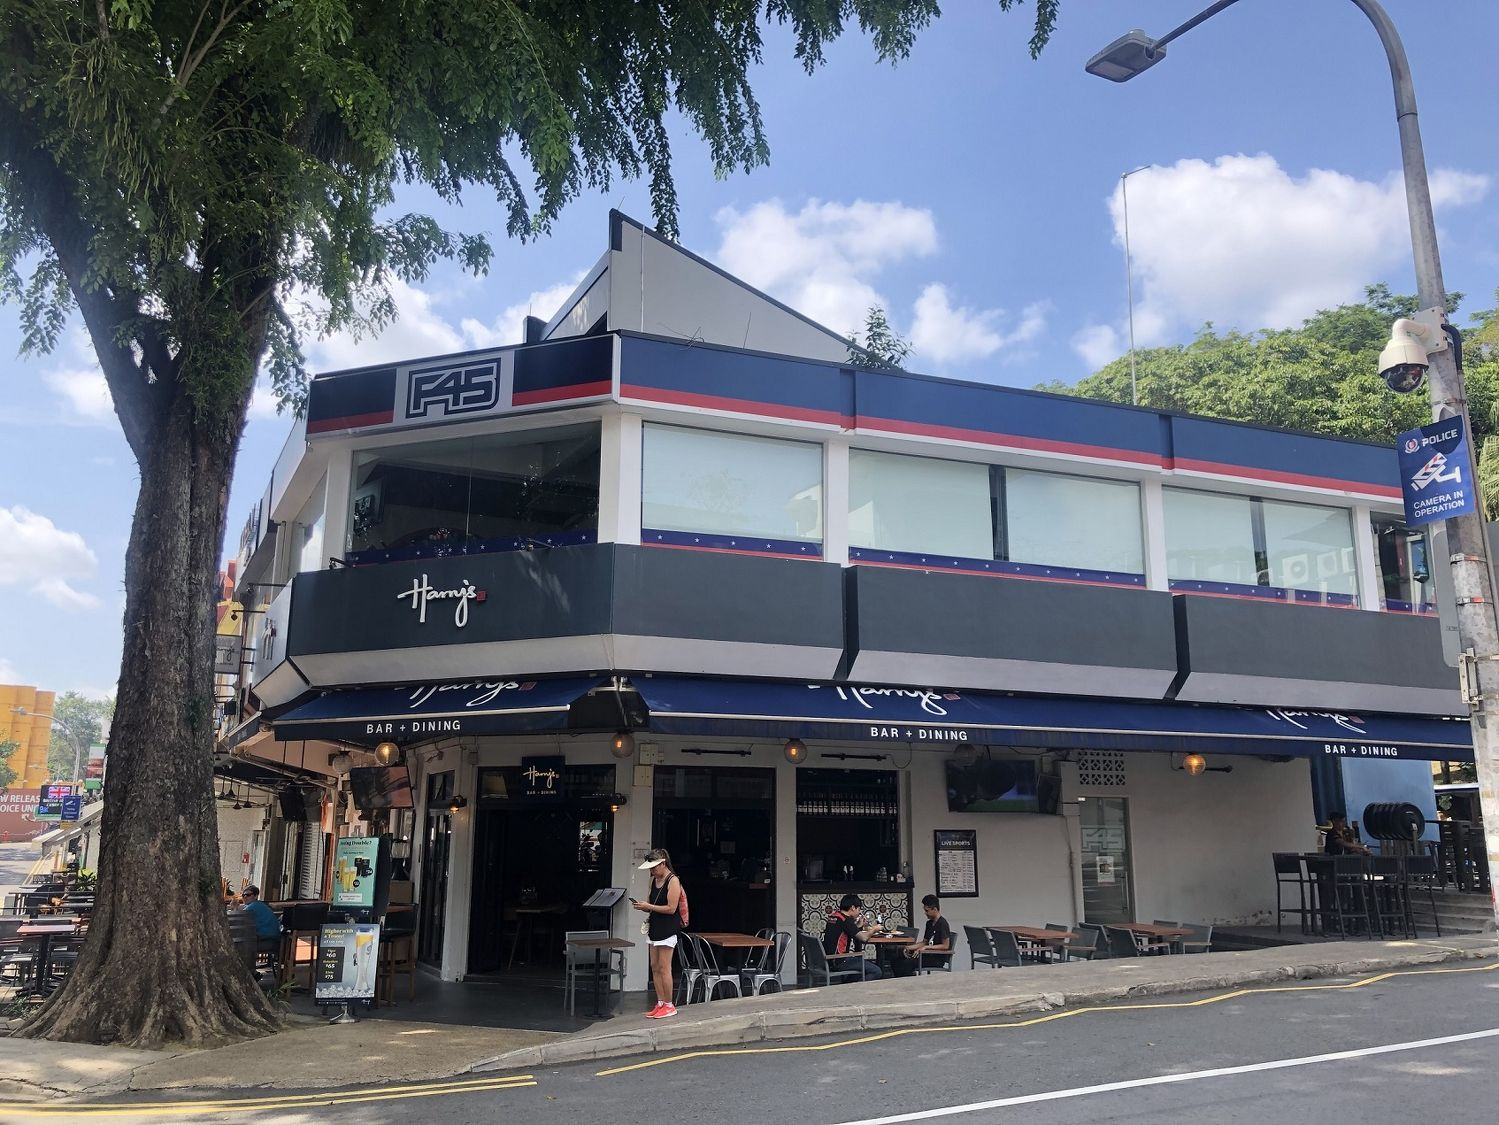 EDGEPROP SINGAPORE - The corner shophoust at Lorong Mambong has an asking price of $20.8 million (Photo: Savills Singapore)